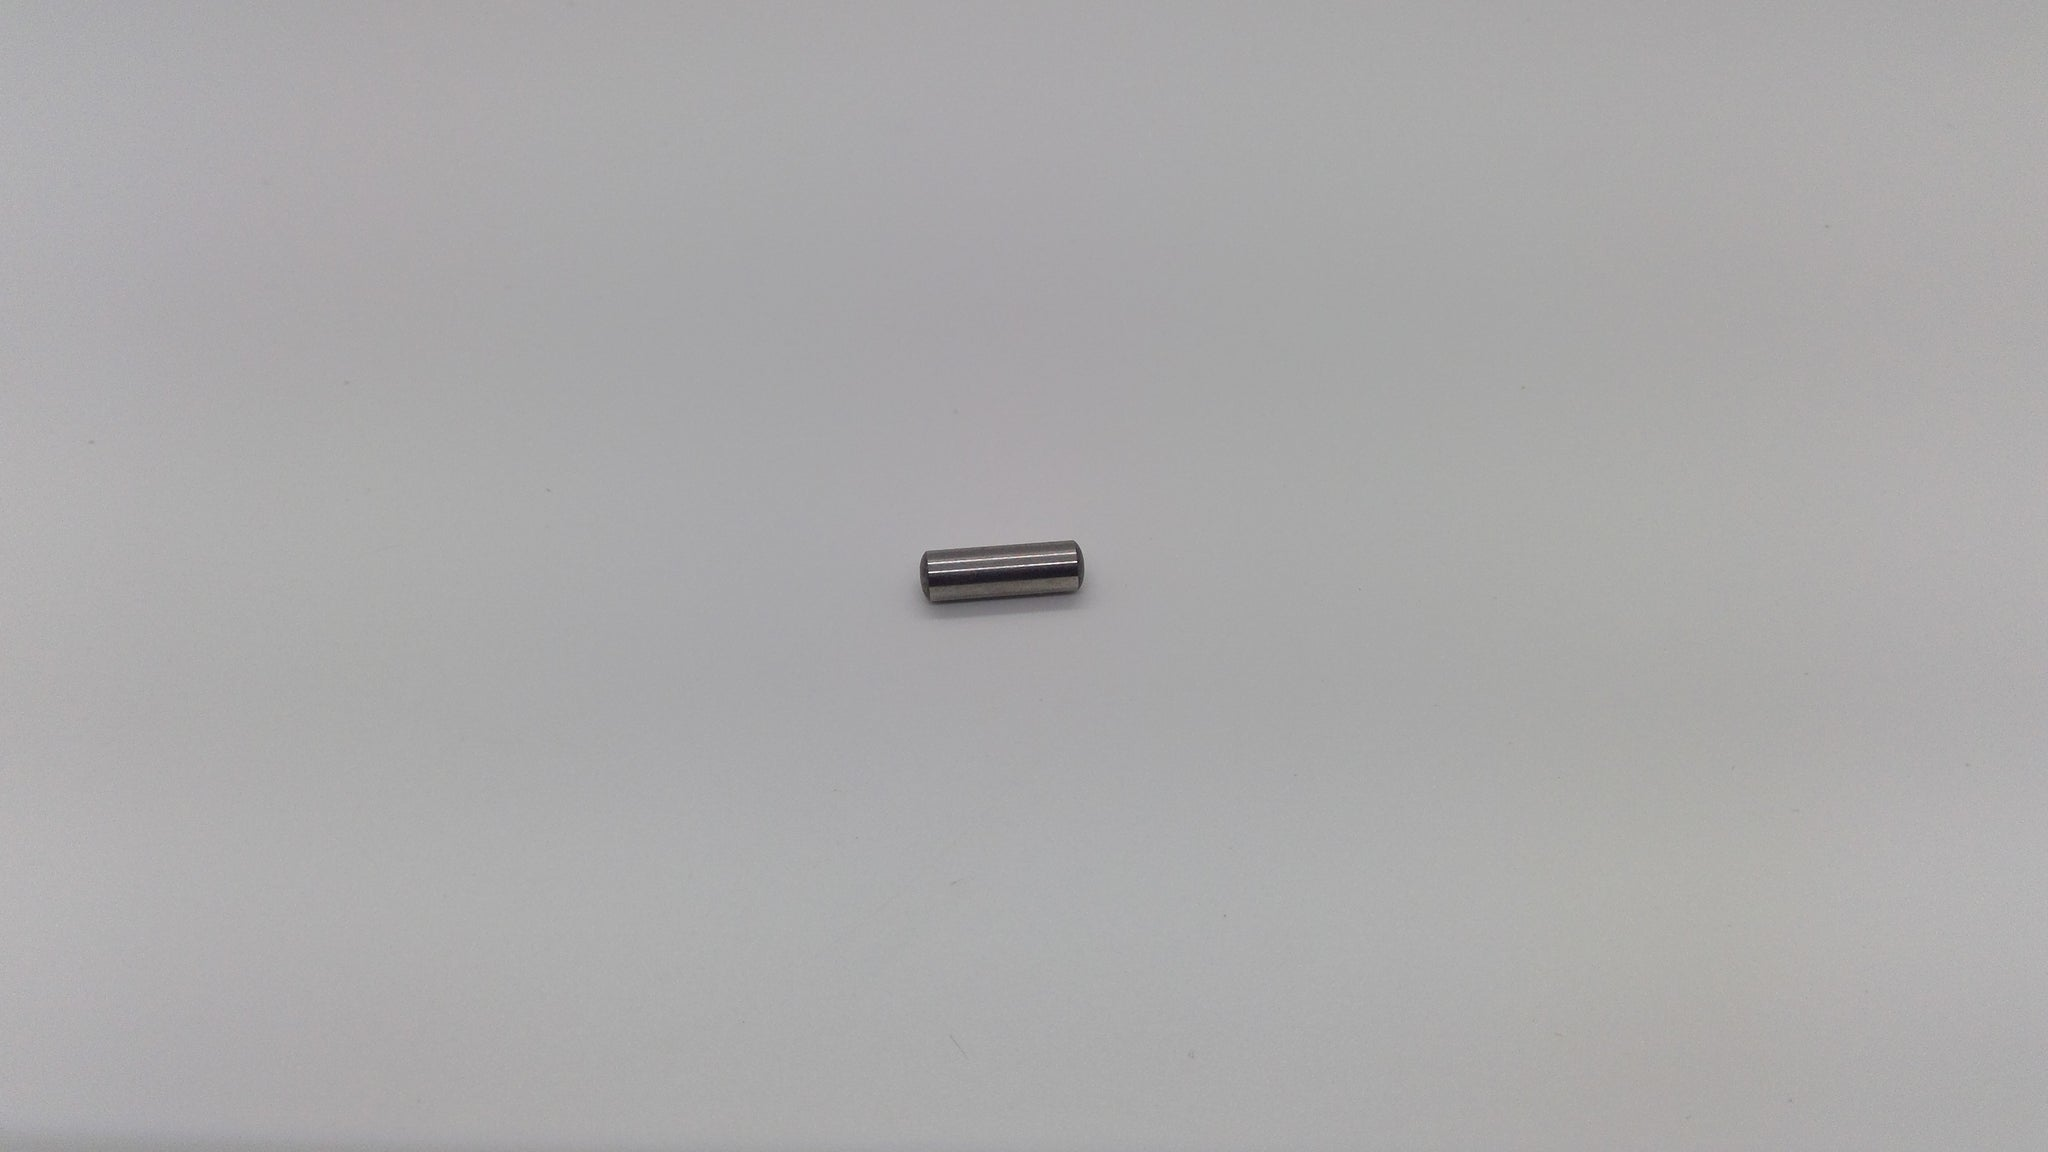 5mm x 15.8mm Dowel pin